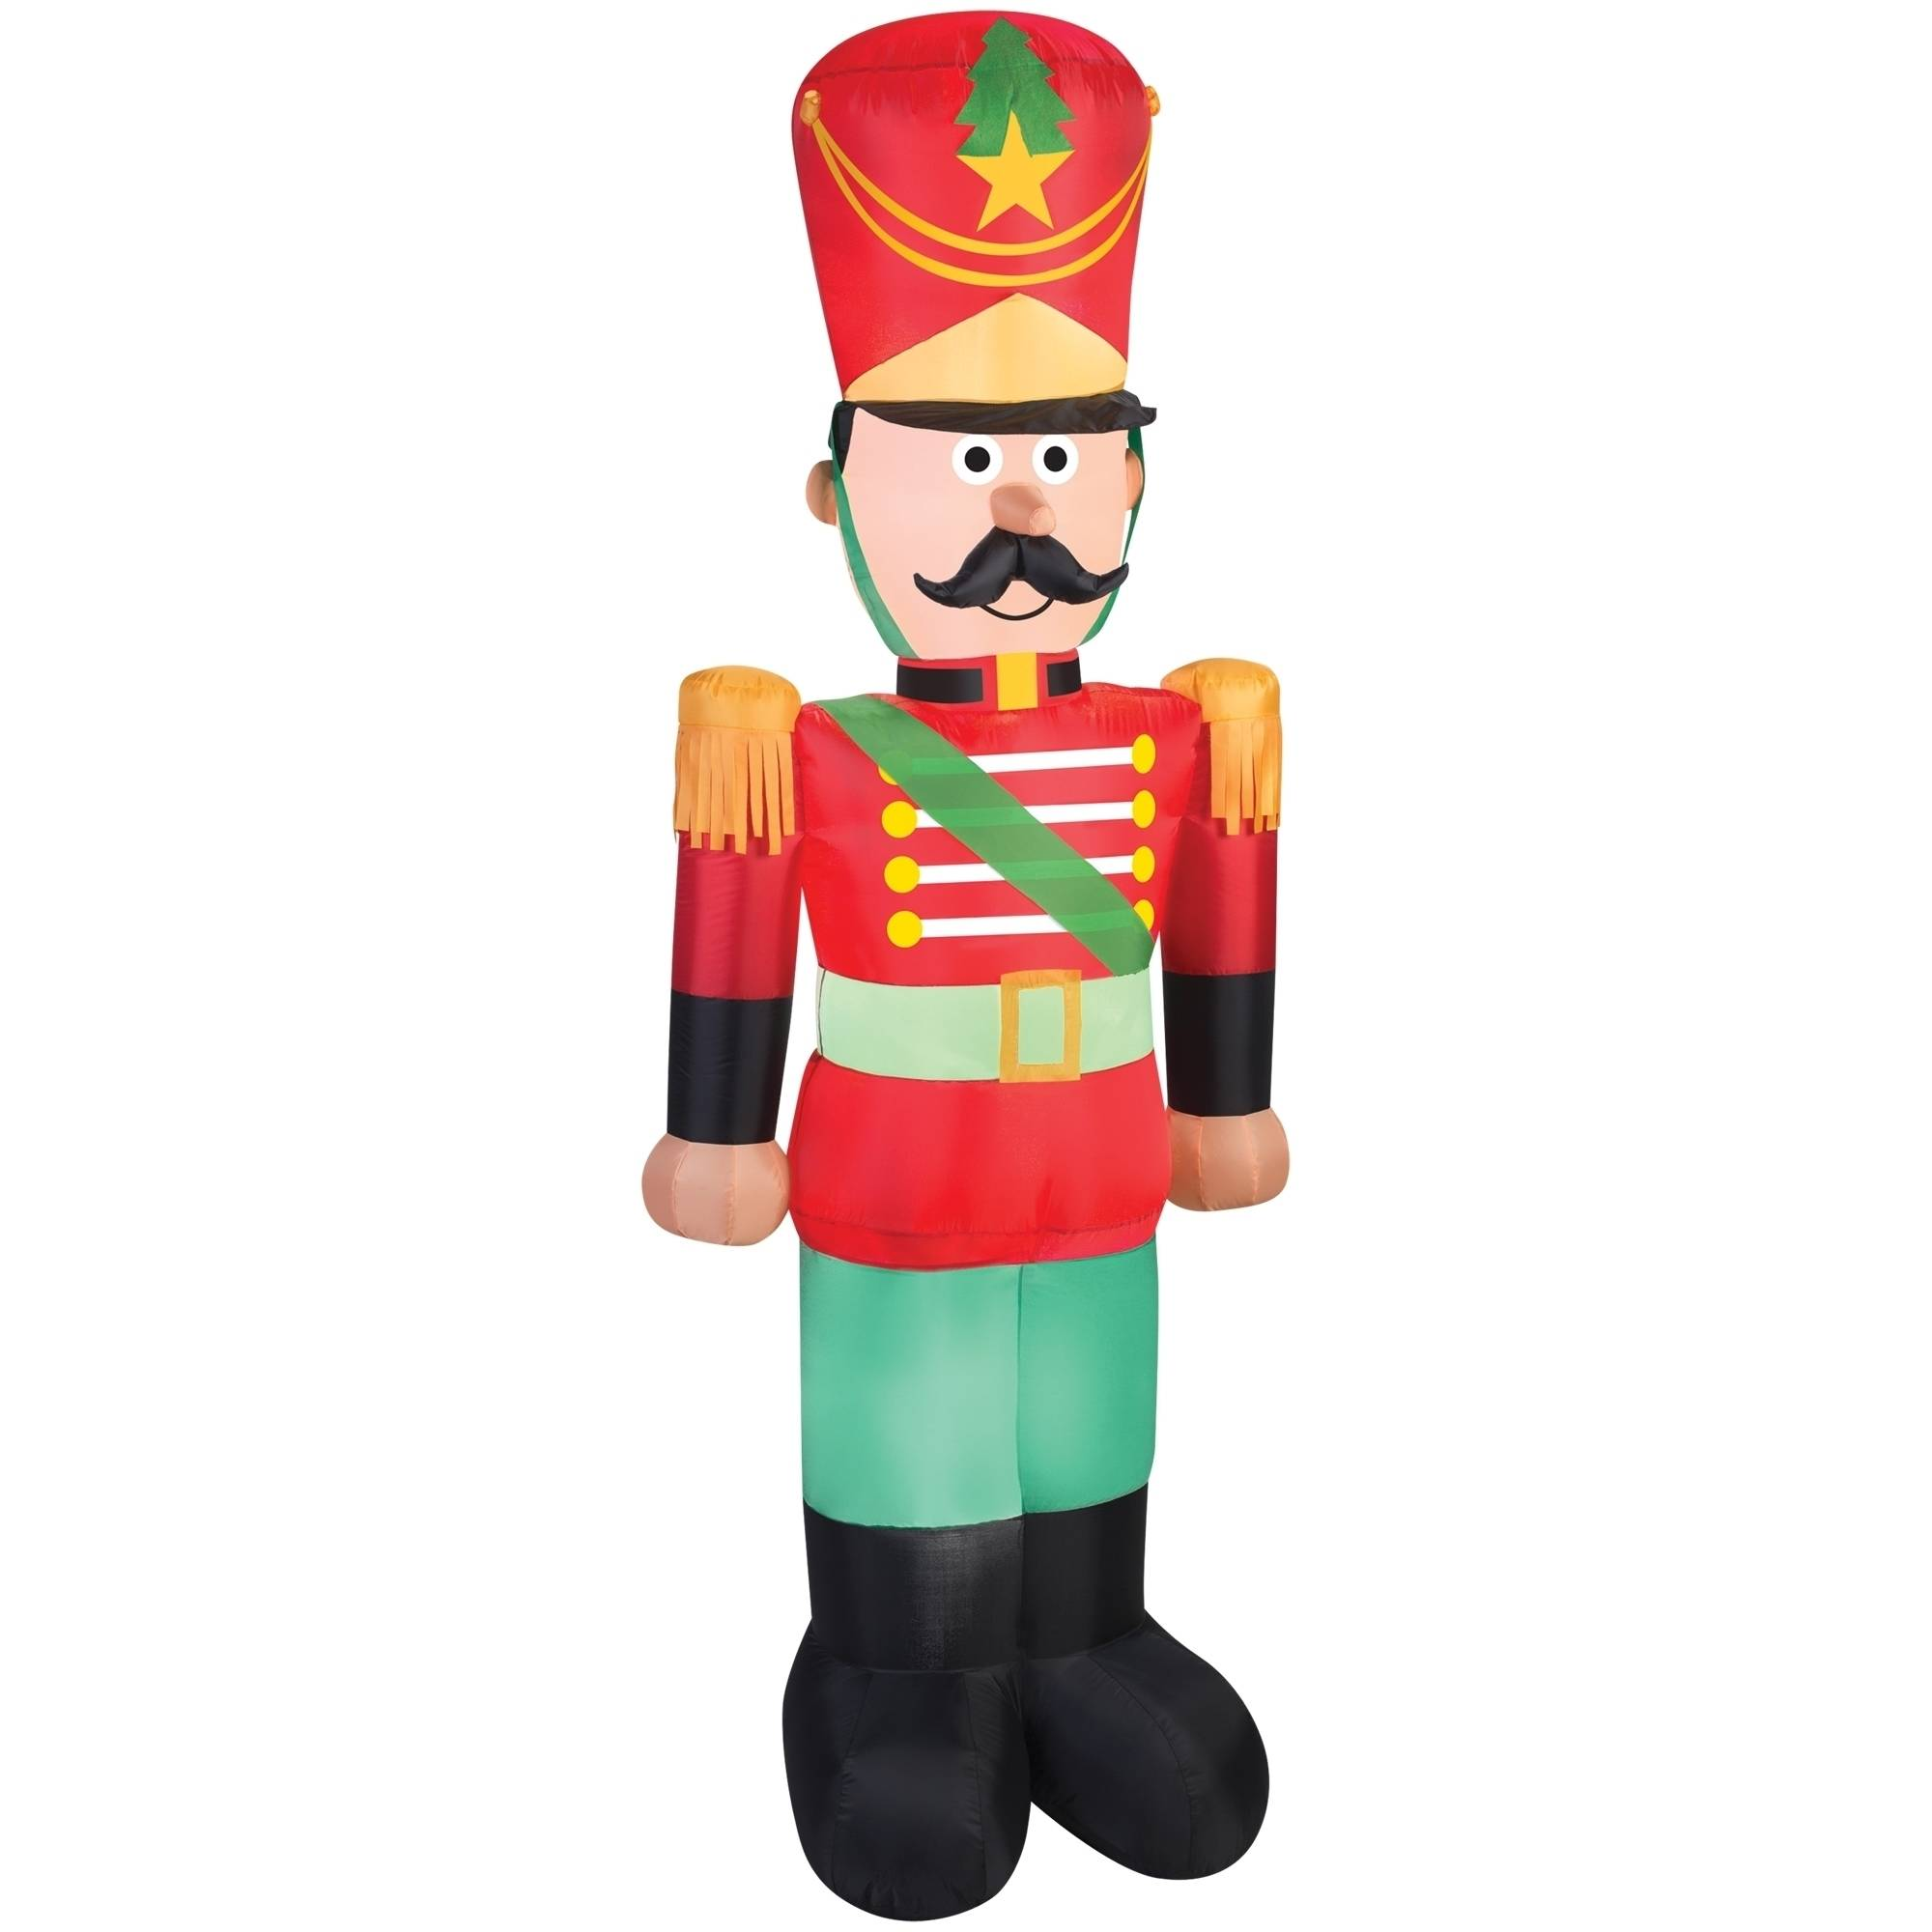 Toy Soldier Airblown Christmas Decoration